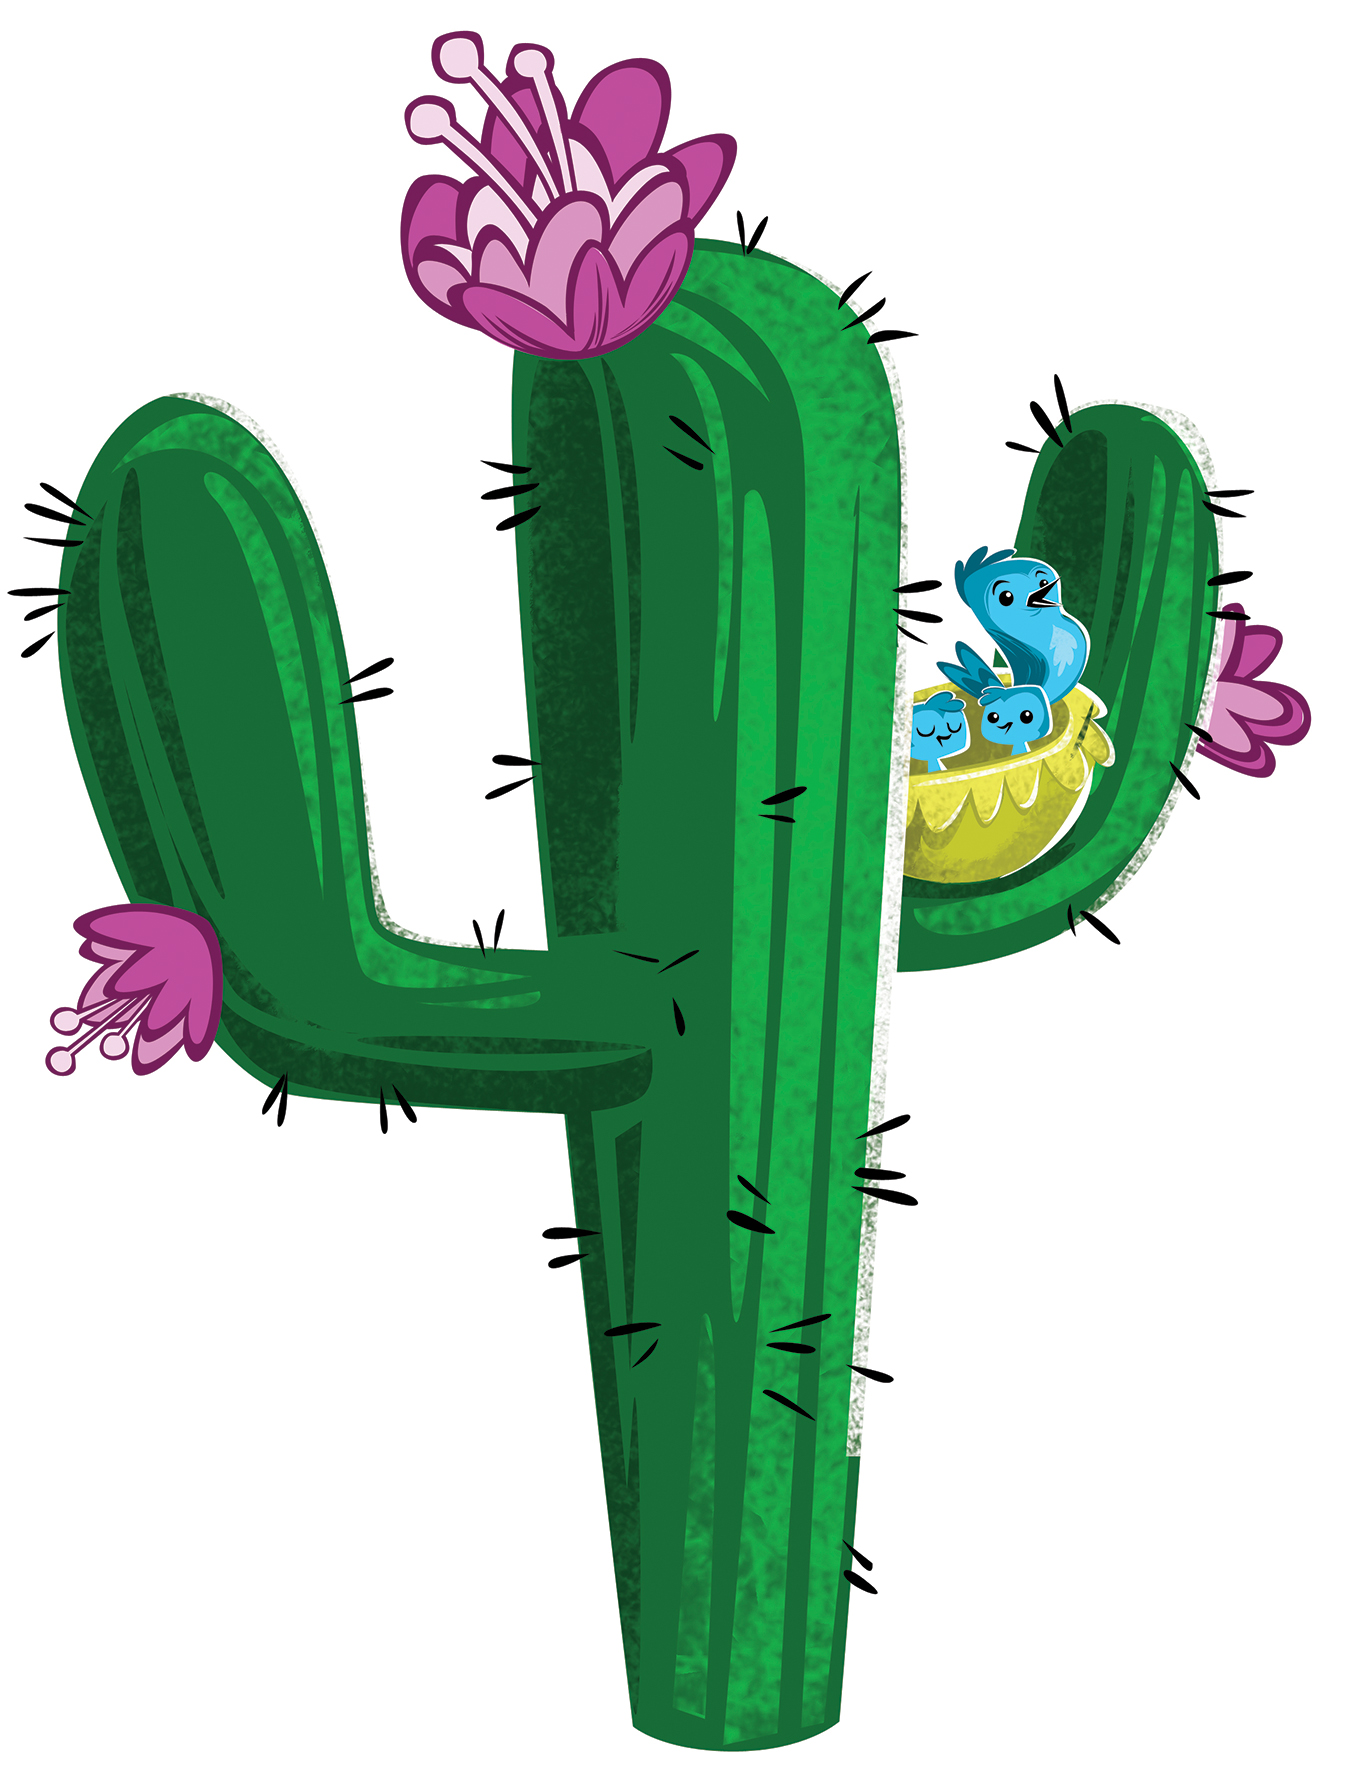 14 Cartoon Cactus   Free Cliparts That You Can Download To You